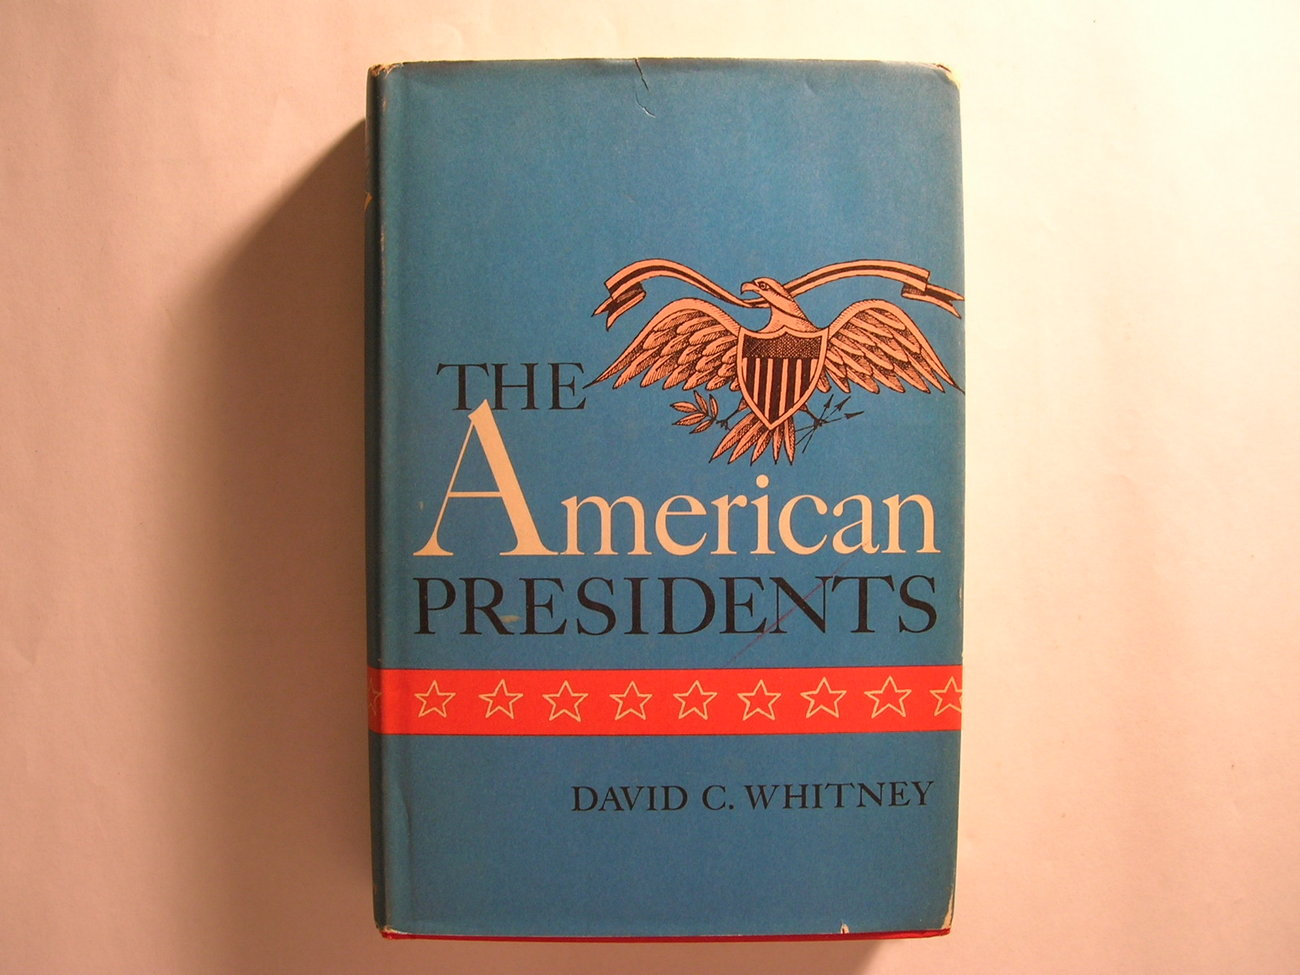 The American Presidents - David C. Whitney